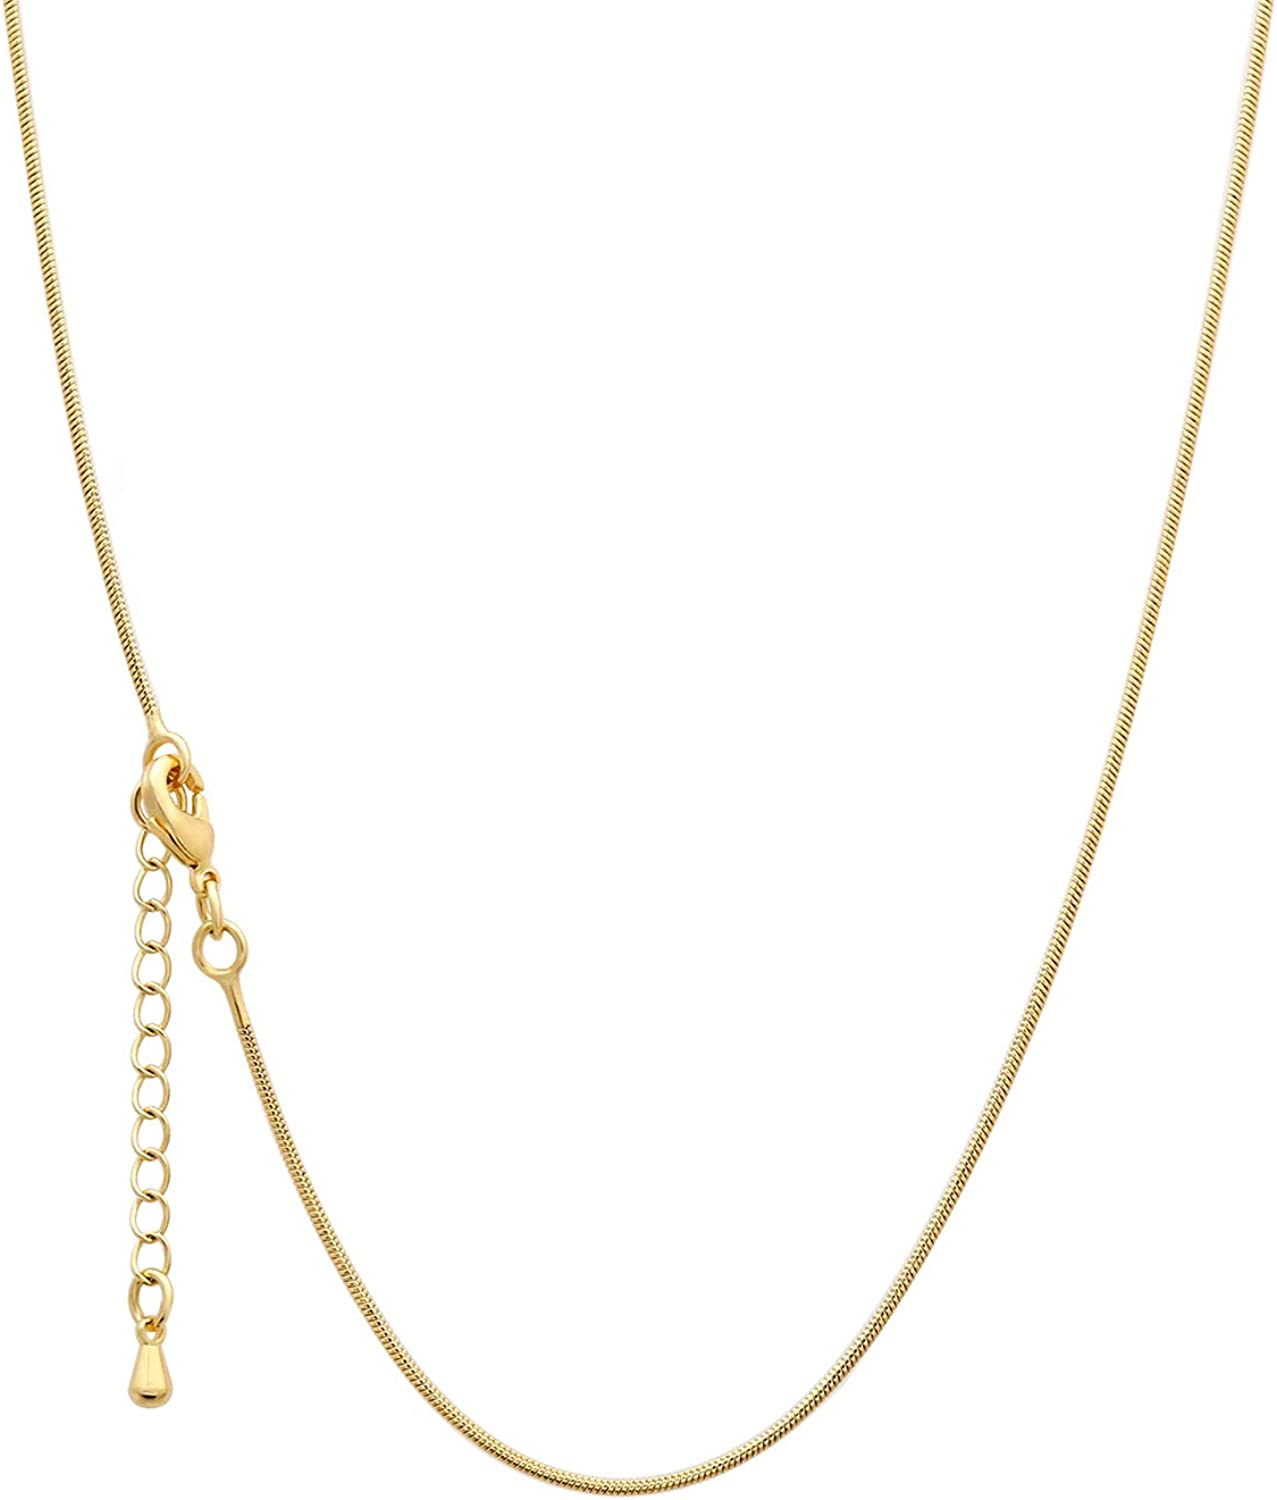 18K Gold Thin Gold Chain Set for Women Gold Plated Thin Snake Chain Gold thin Chain Necklace Round Snake Bone Necklace Italian Necklace